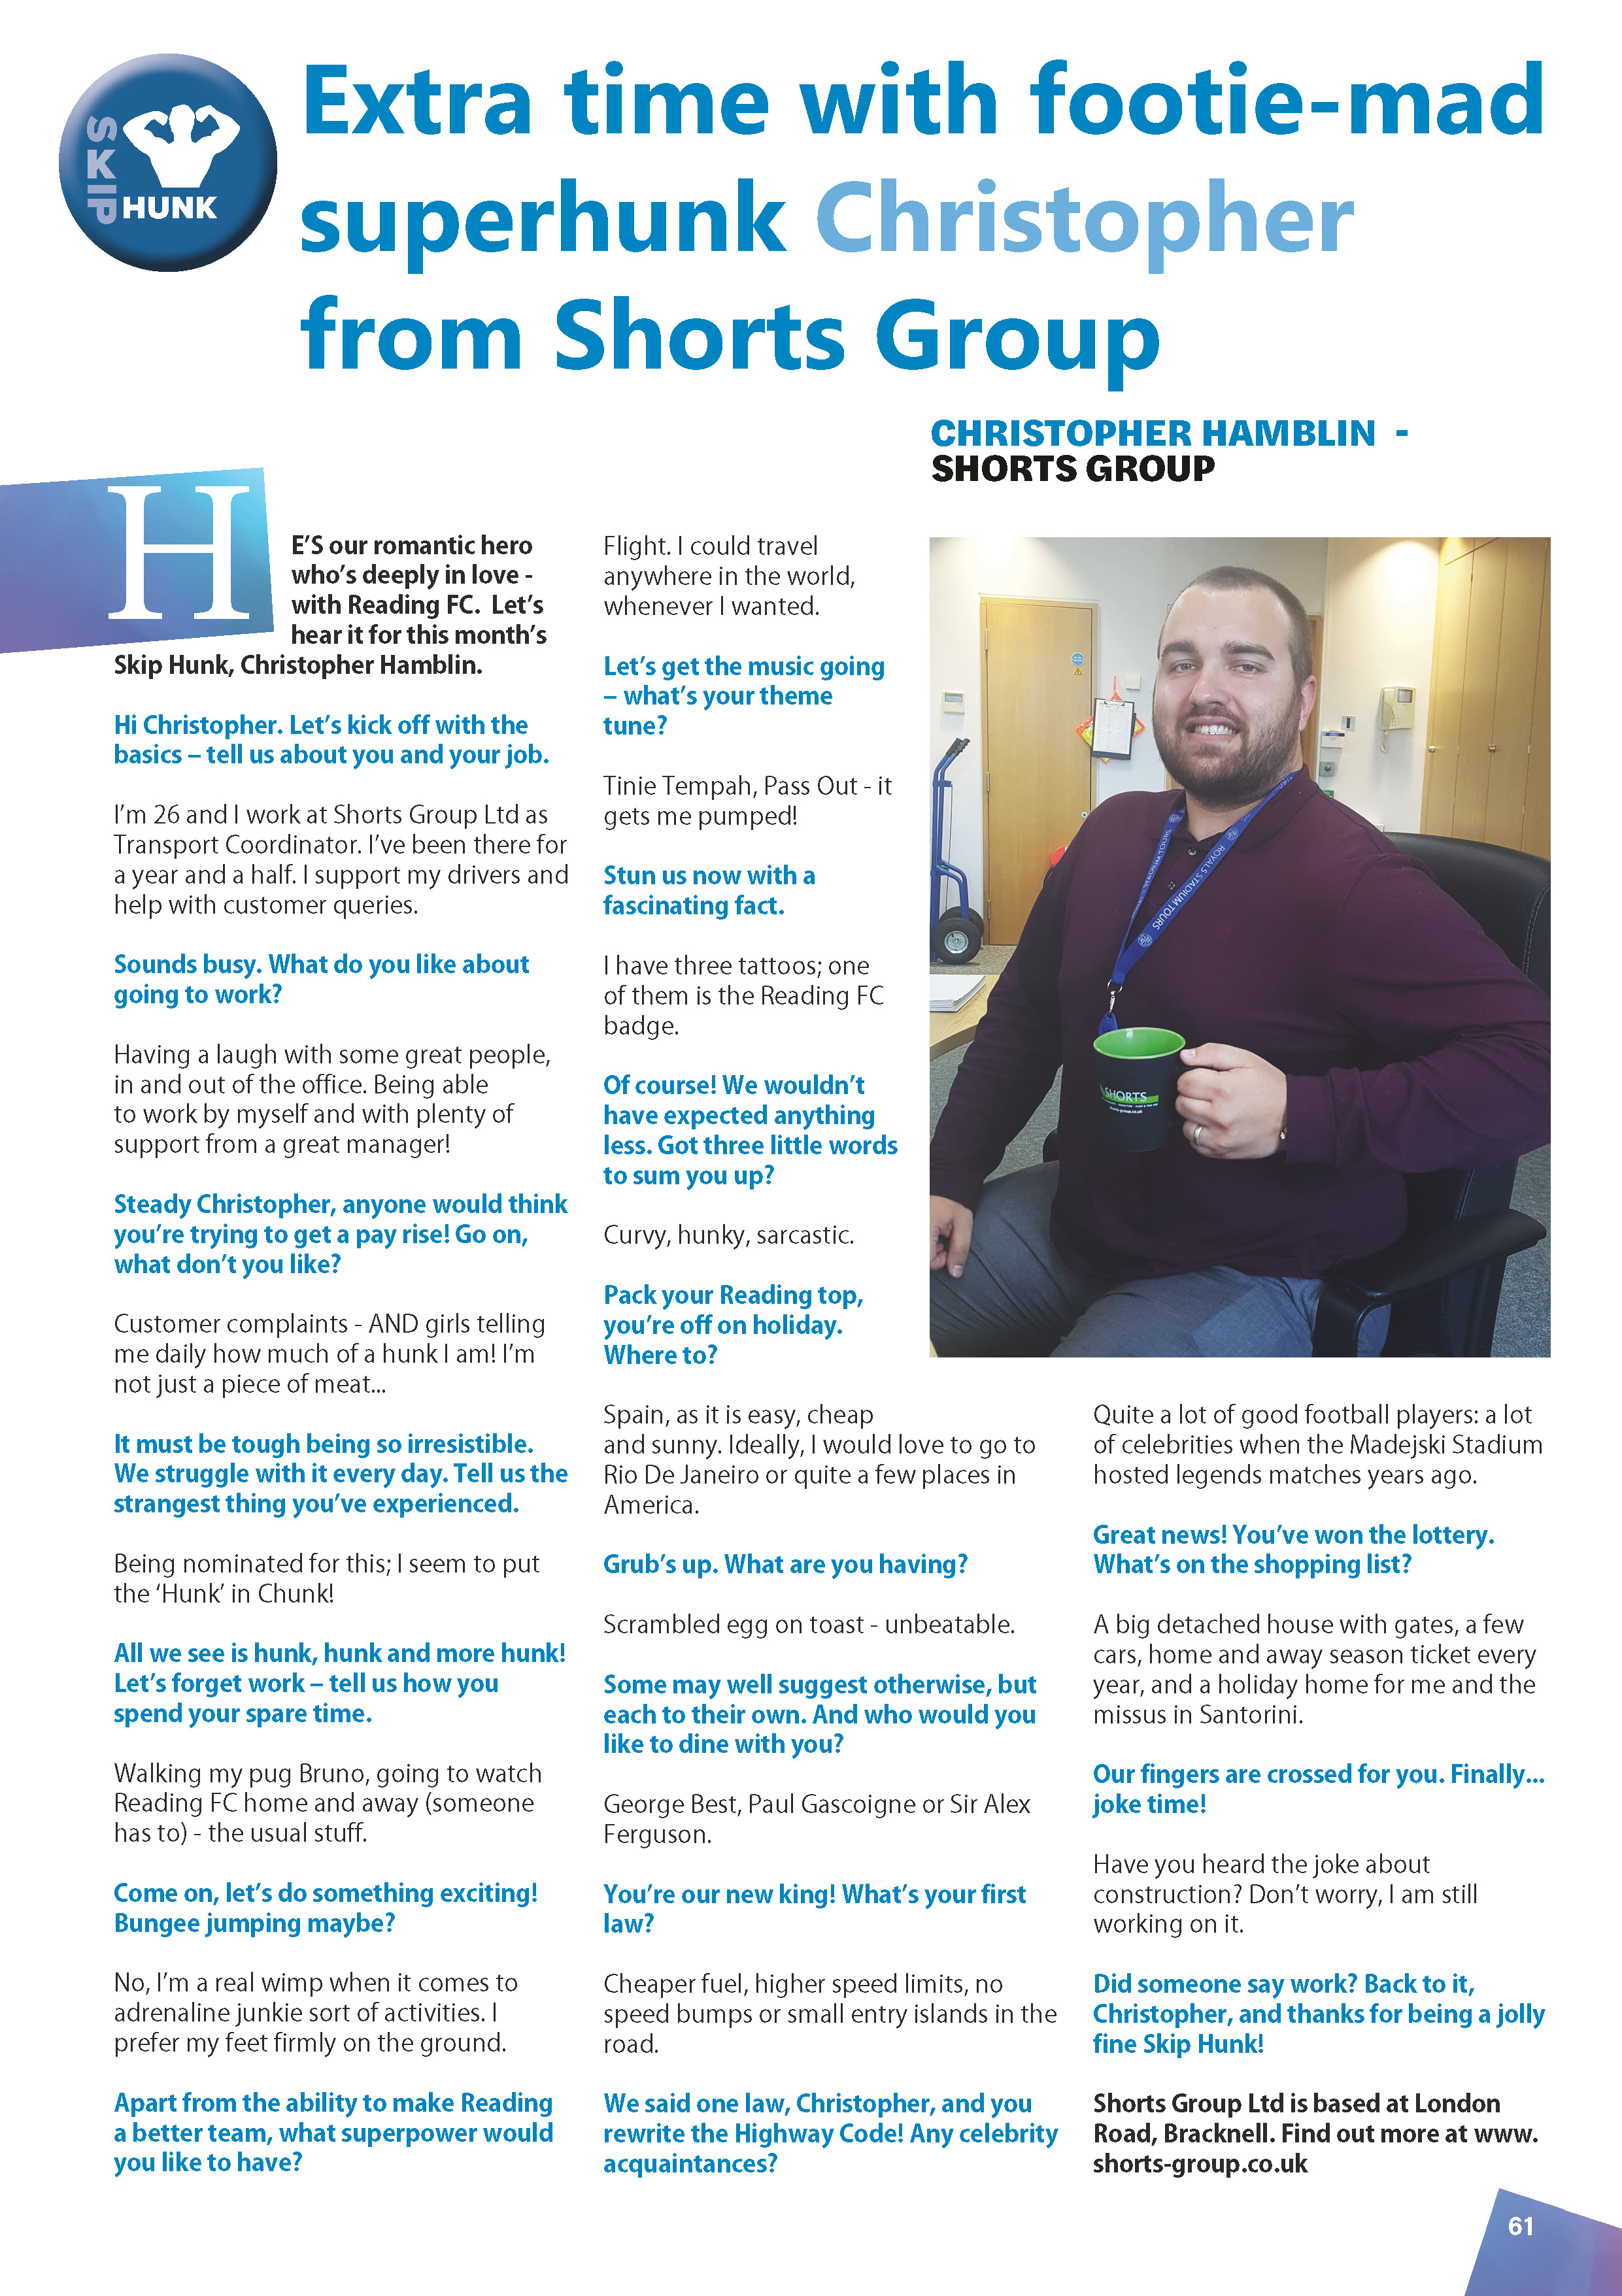 August's Skip Hunk: Christopher Hamblin from Shorts Group